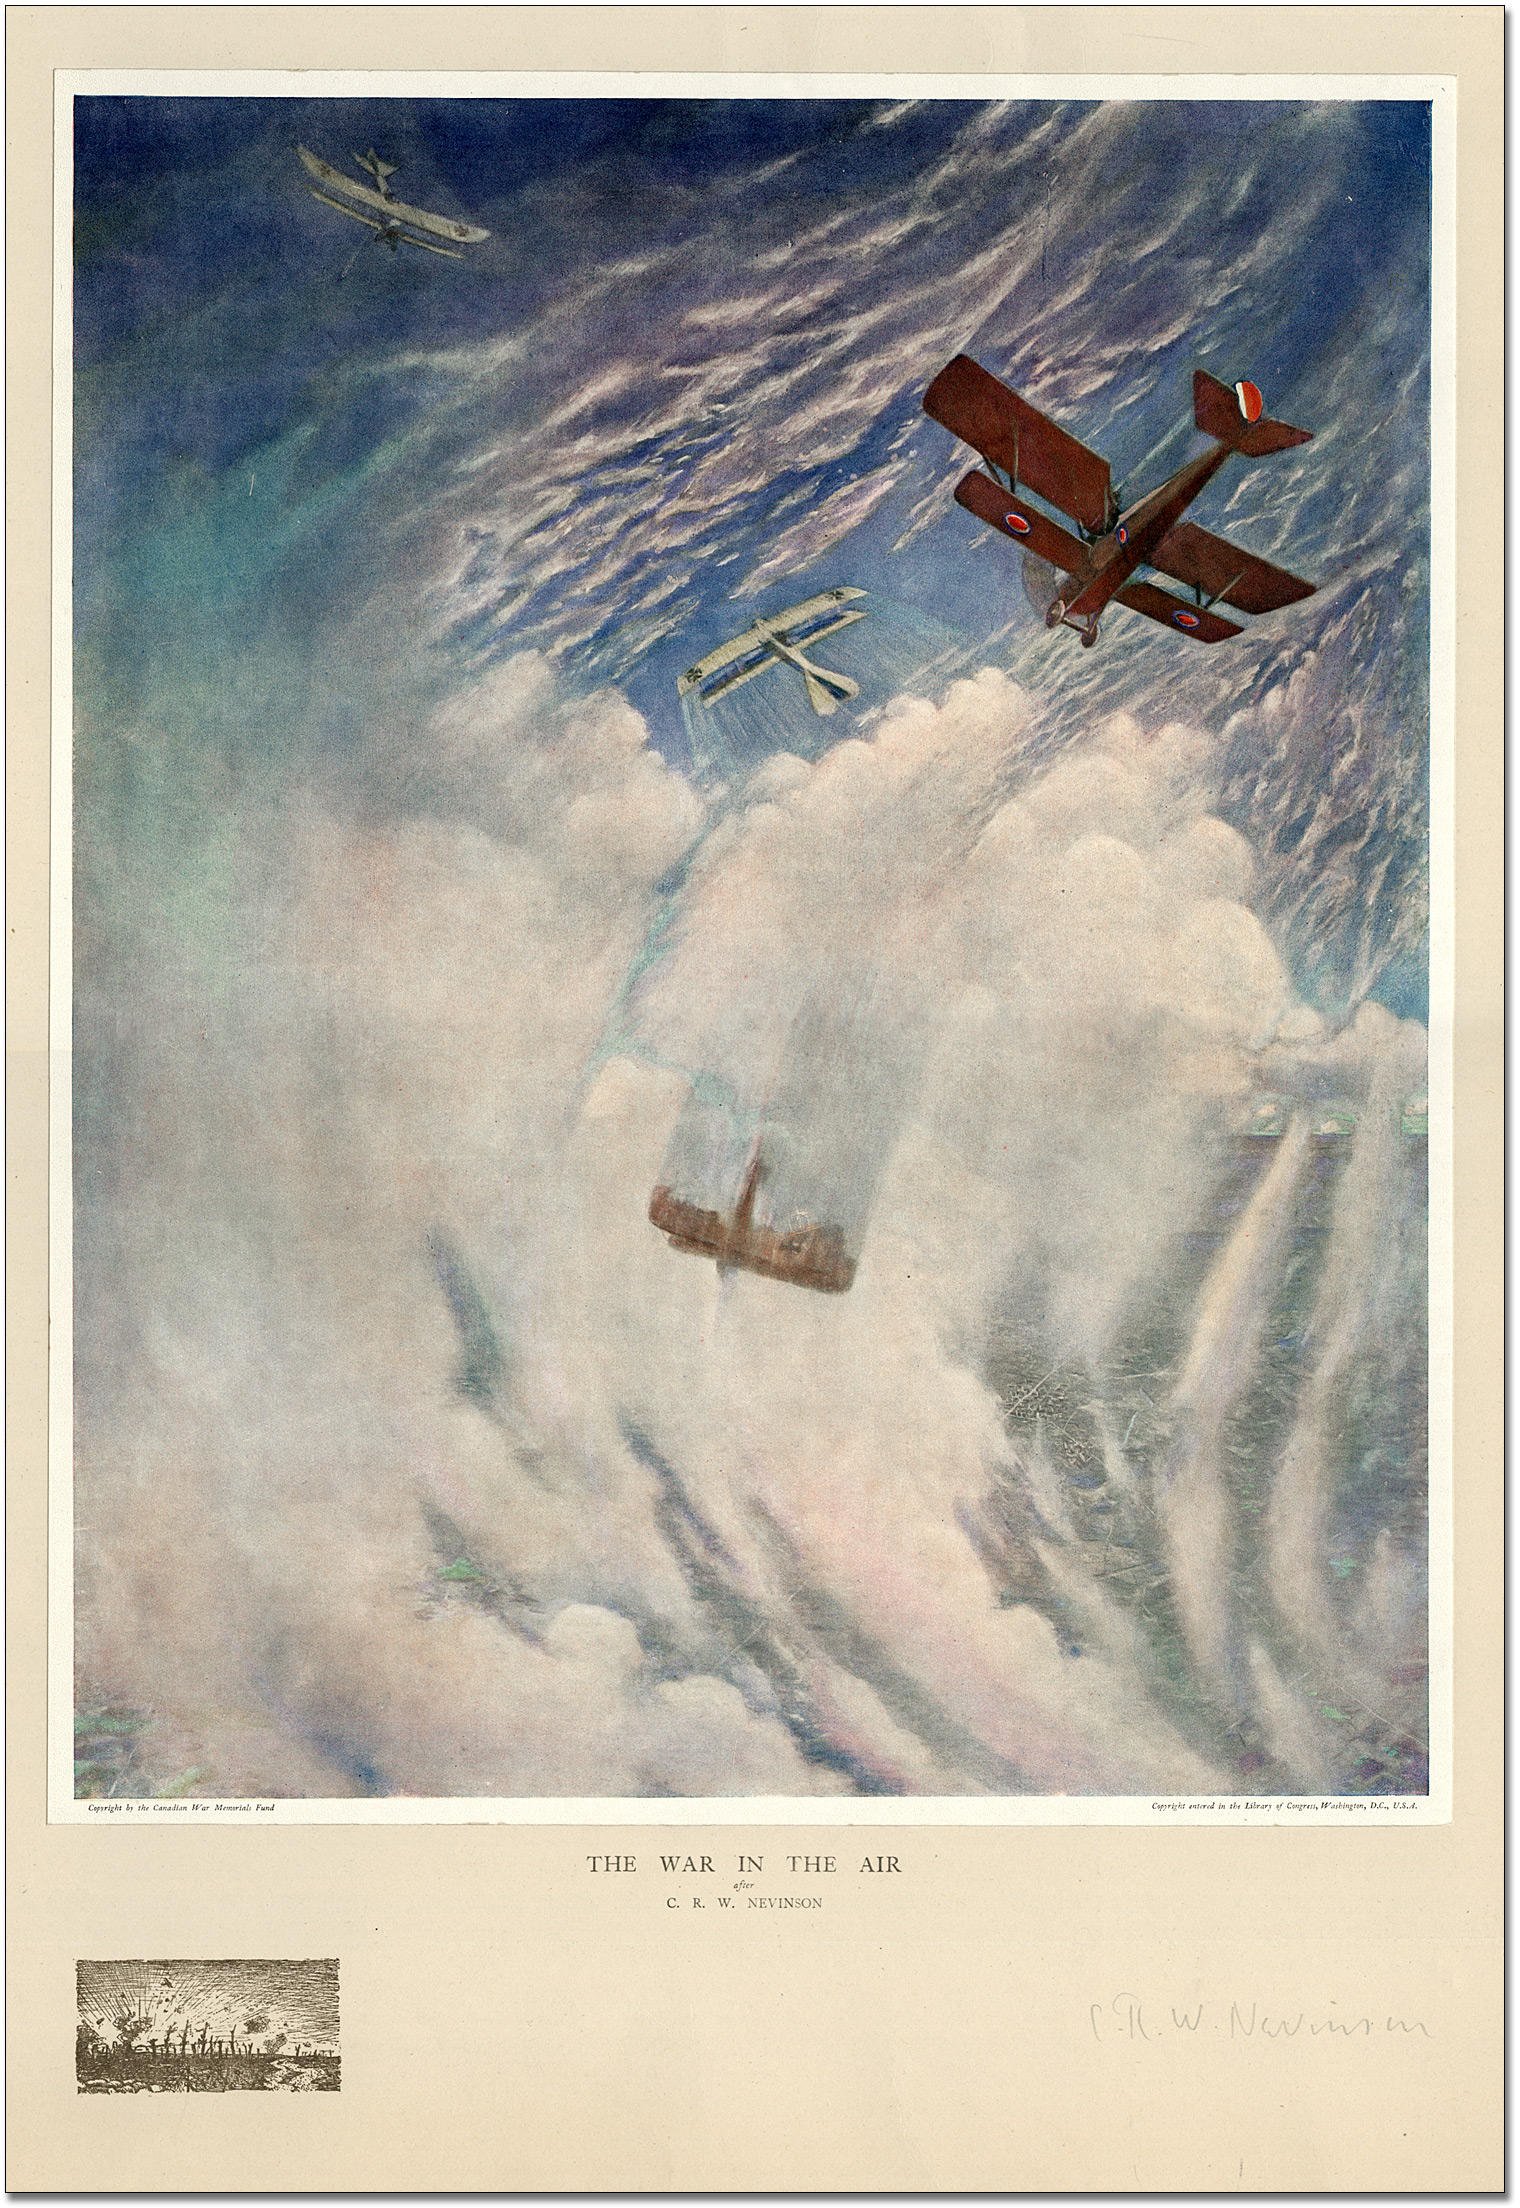 The War In the Air after C.R.W. Nevinson, 1917